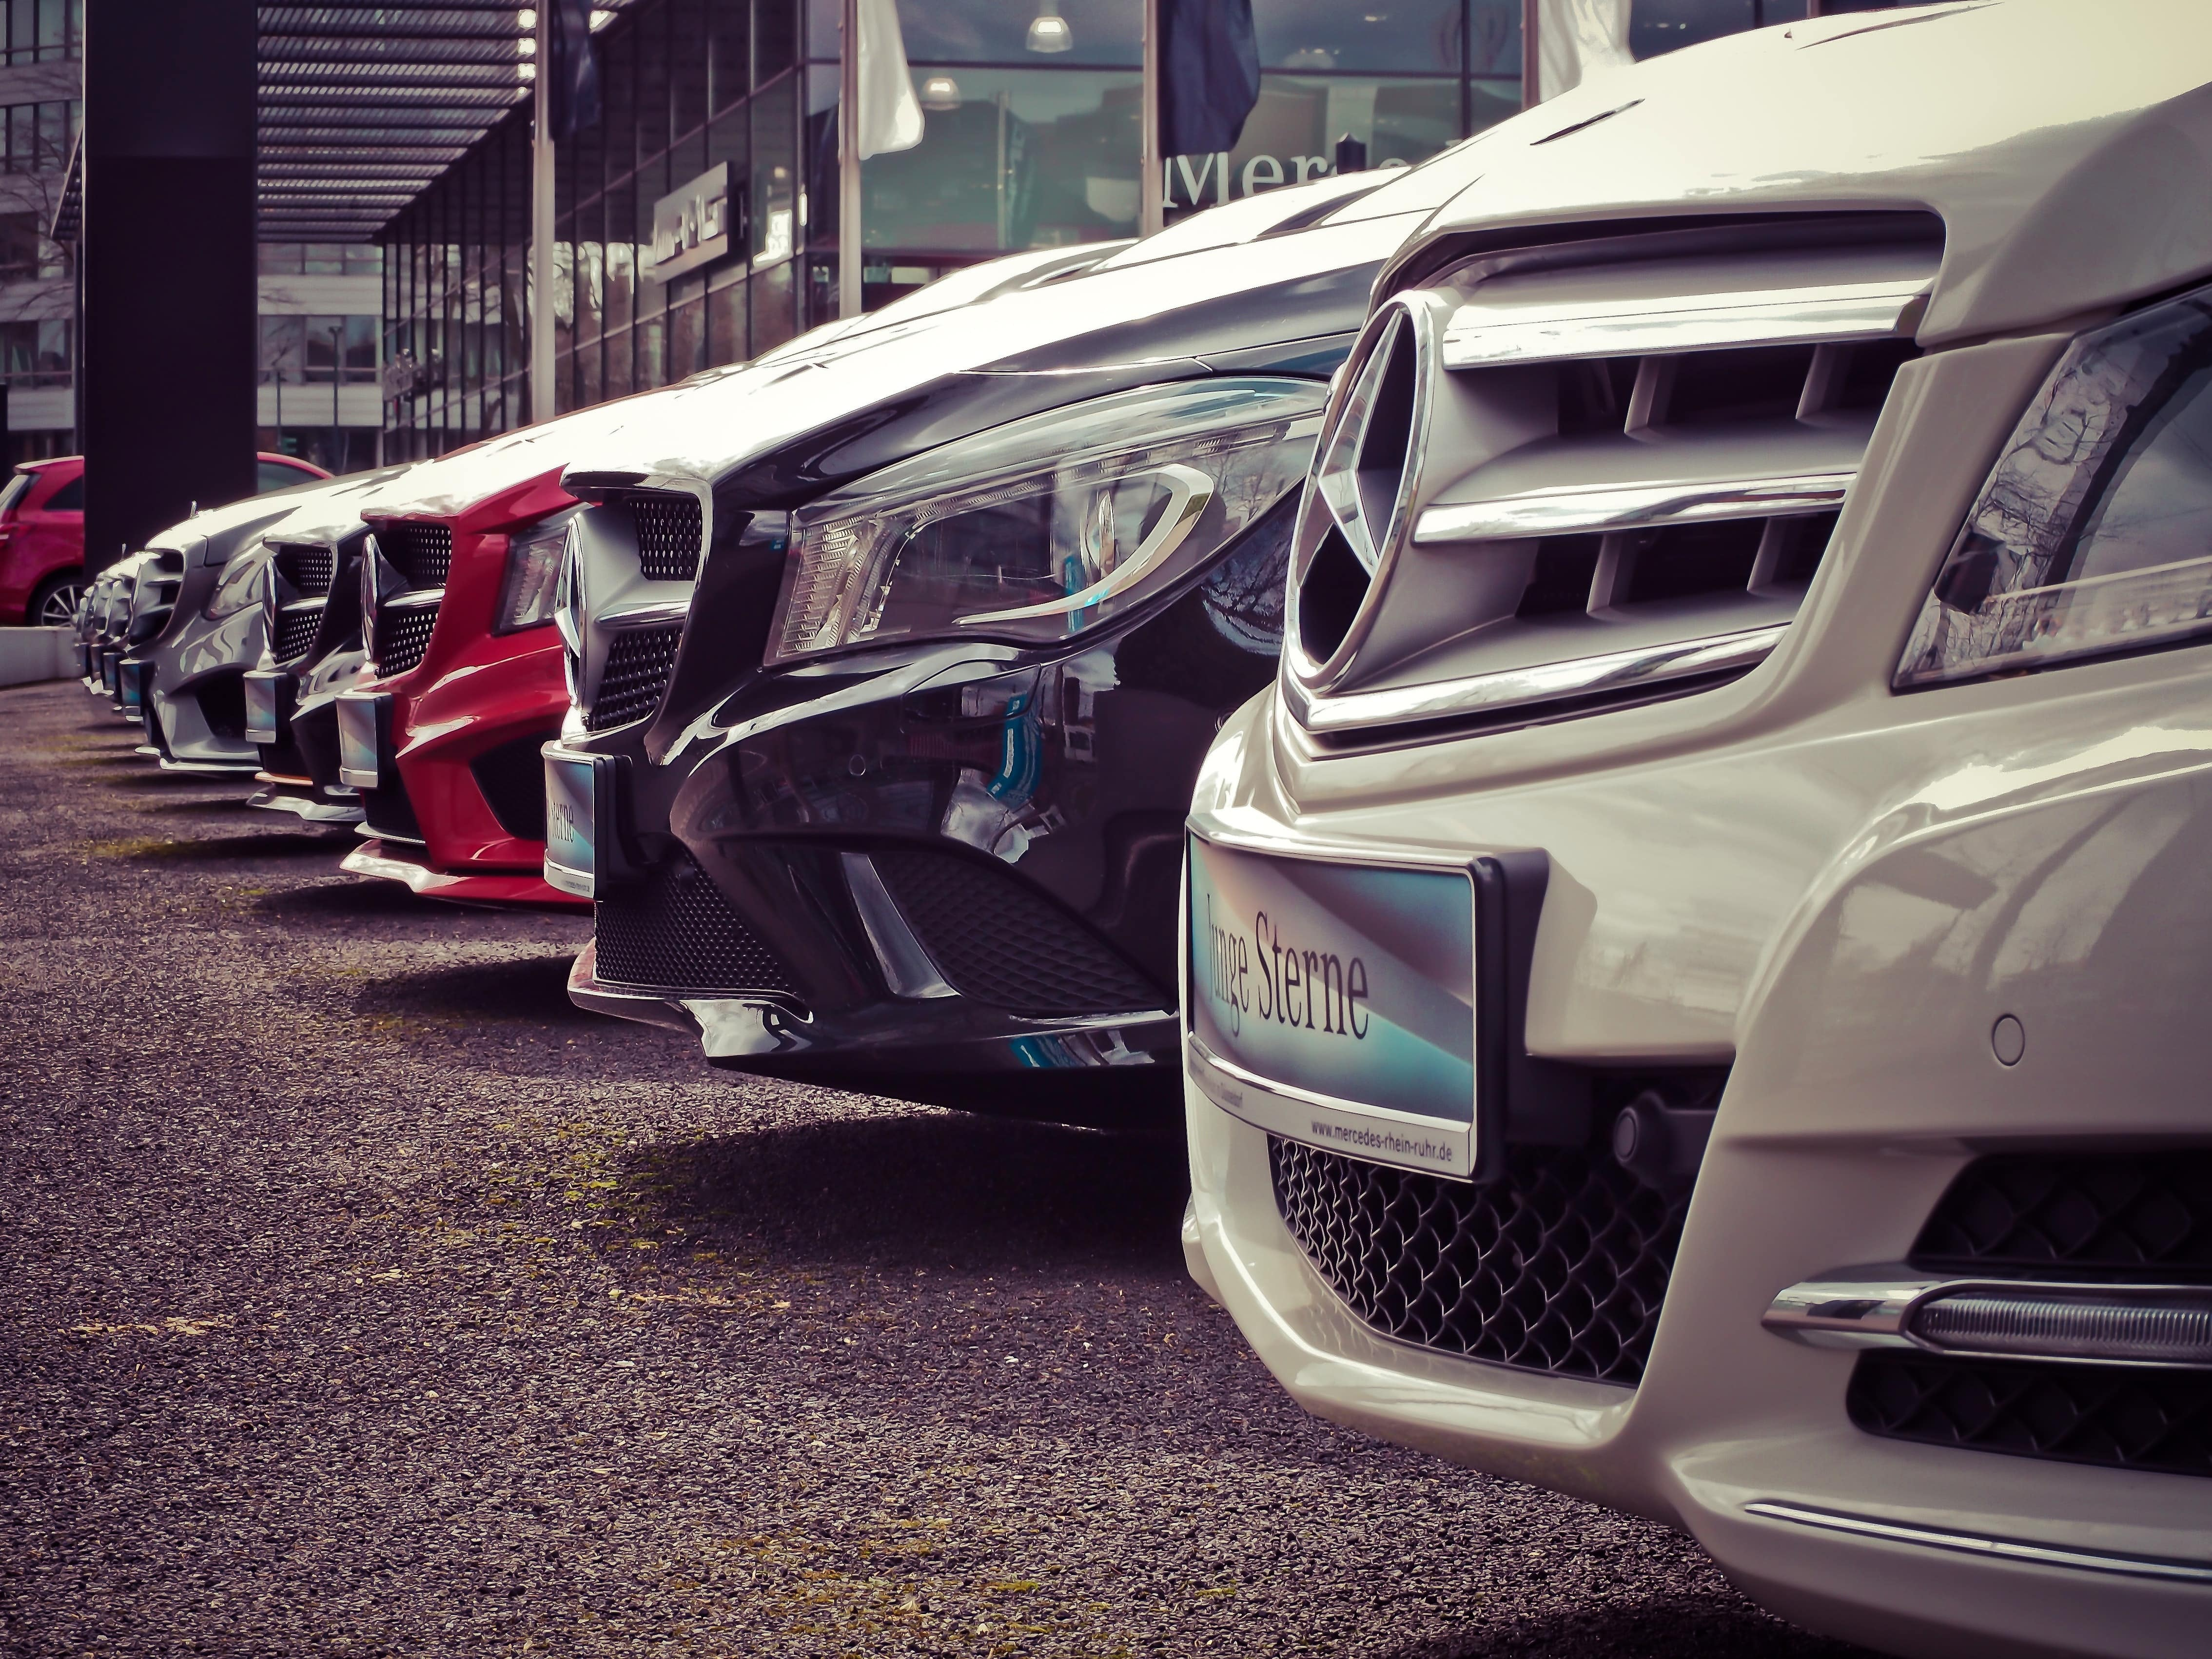 Row of Cars, Vehicles, Mercedes-Benz